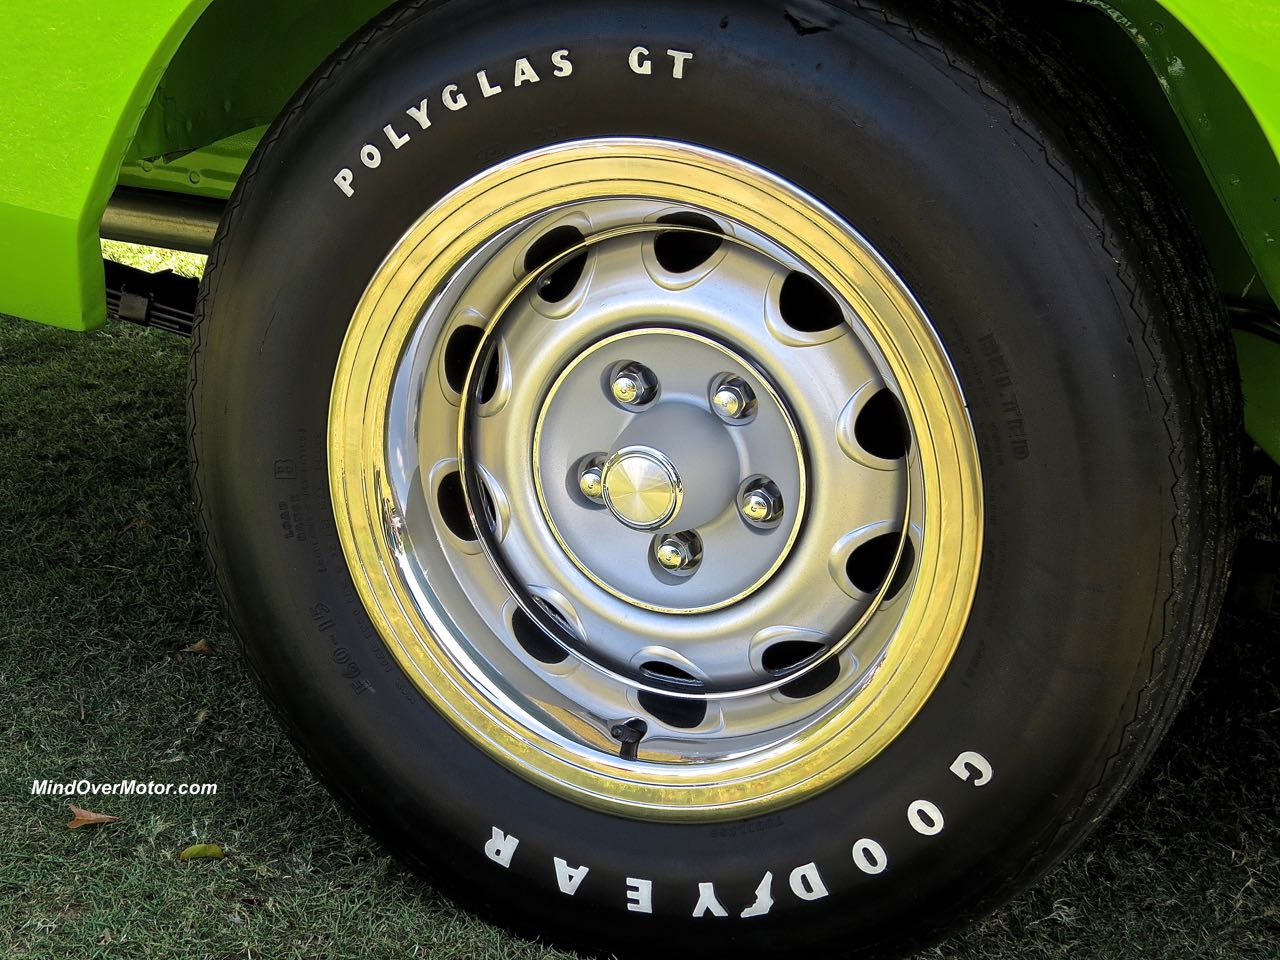 1970 Dodge Charger R:T Wheel